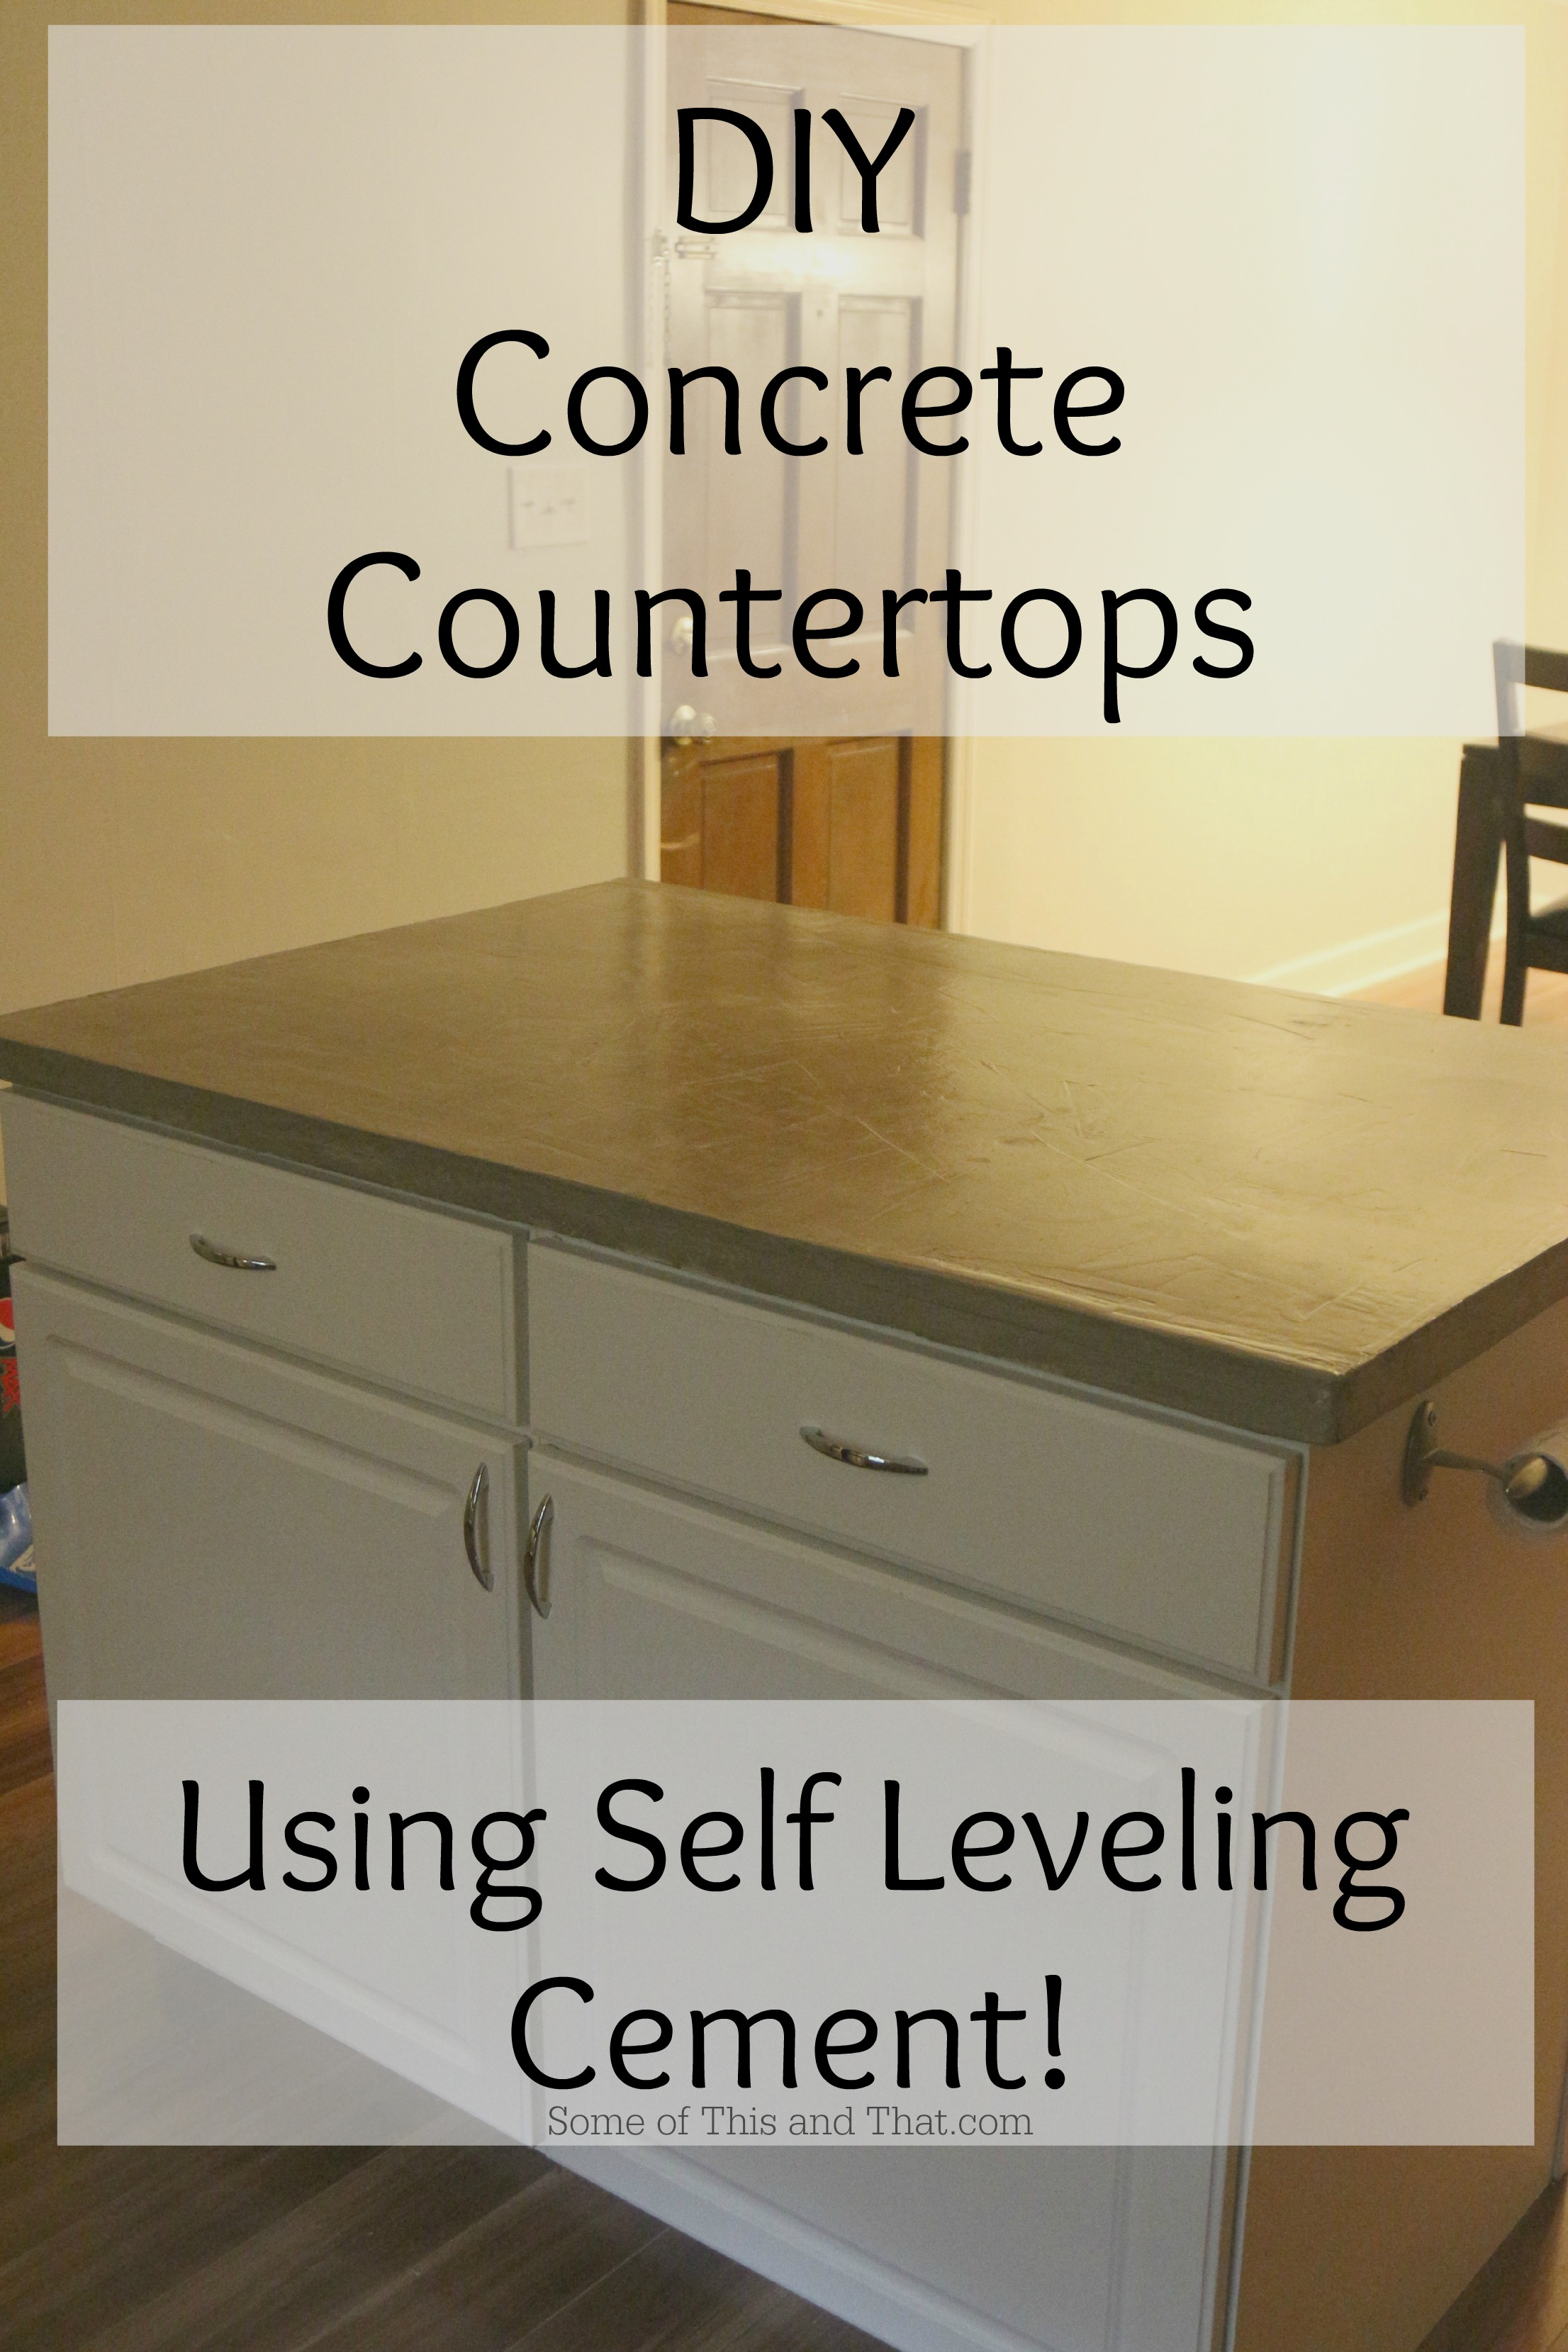 Diy concrete countertops using self leveling cement some of this diy concrete countertops using self leveling cement solutioingenieria Image collections